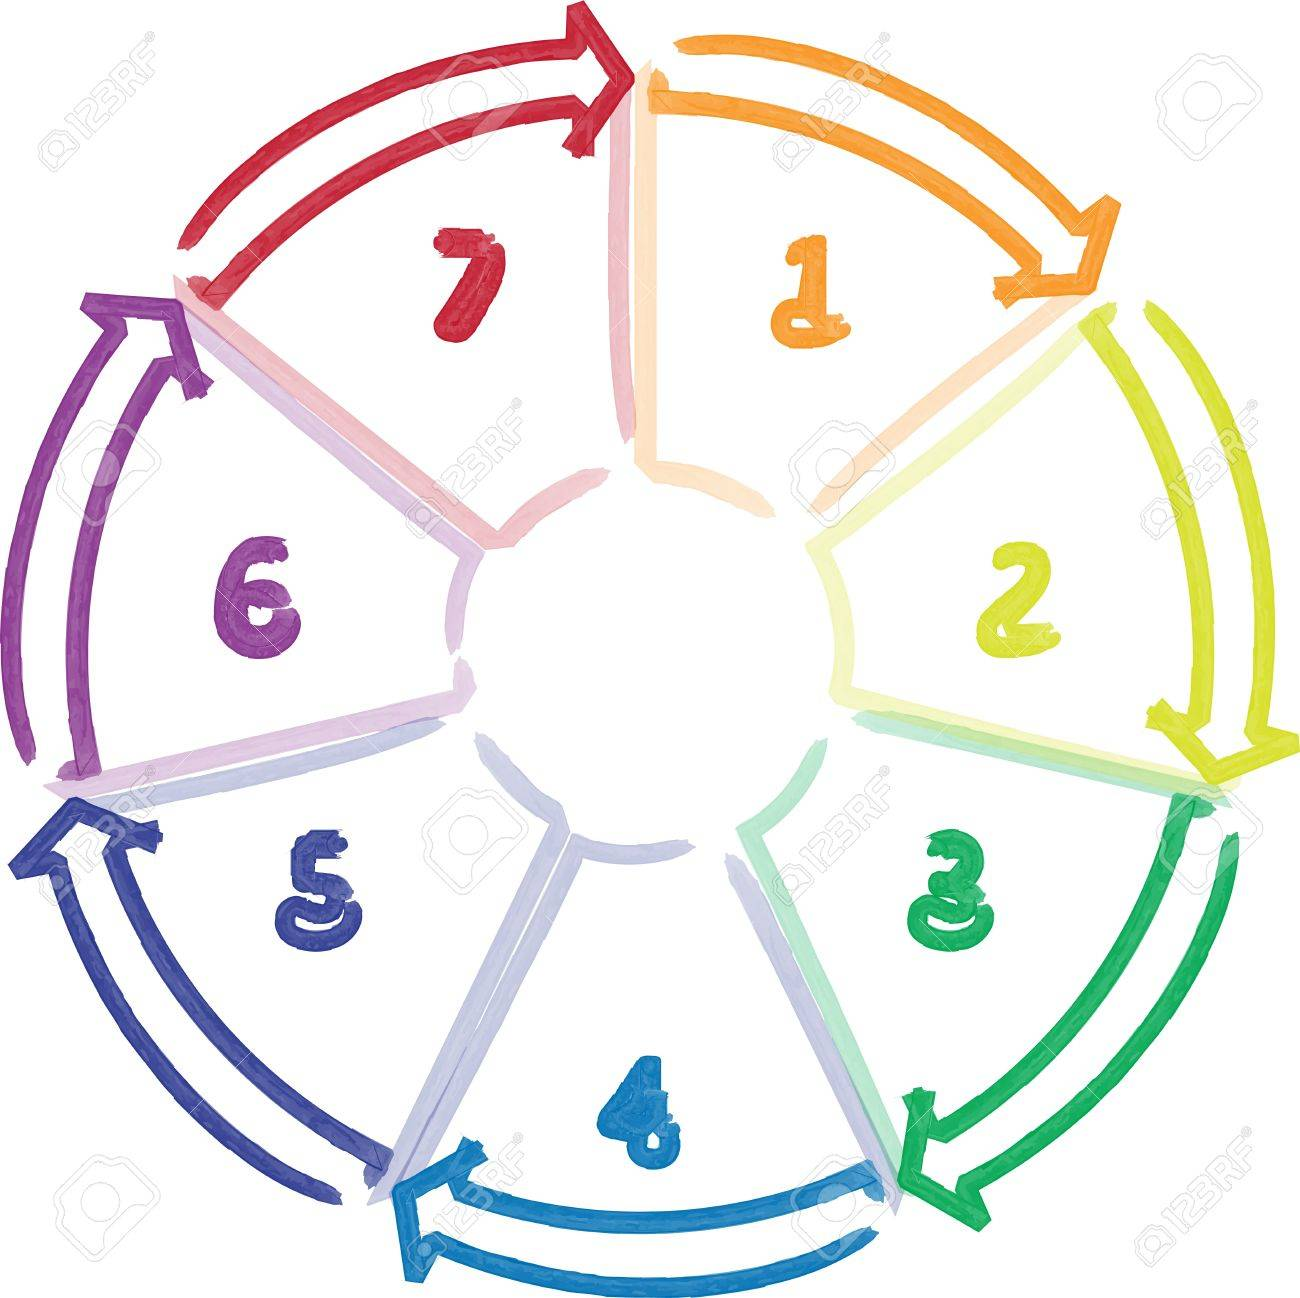 Process cycling arrow by arrow royalty free stock images image - Seven Blank Numbered Cycle Process Arrow Business Diagram Illustration Stock Illustration 9914659